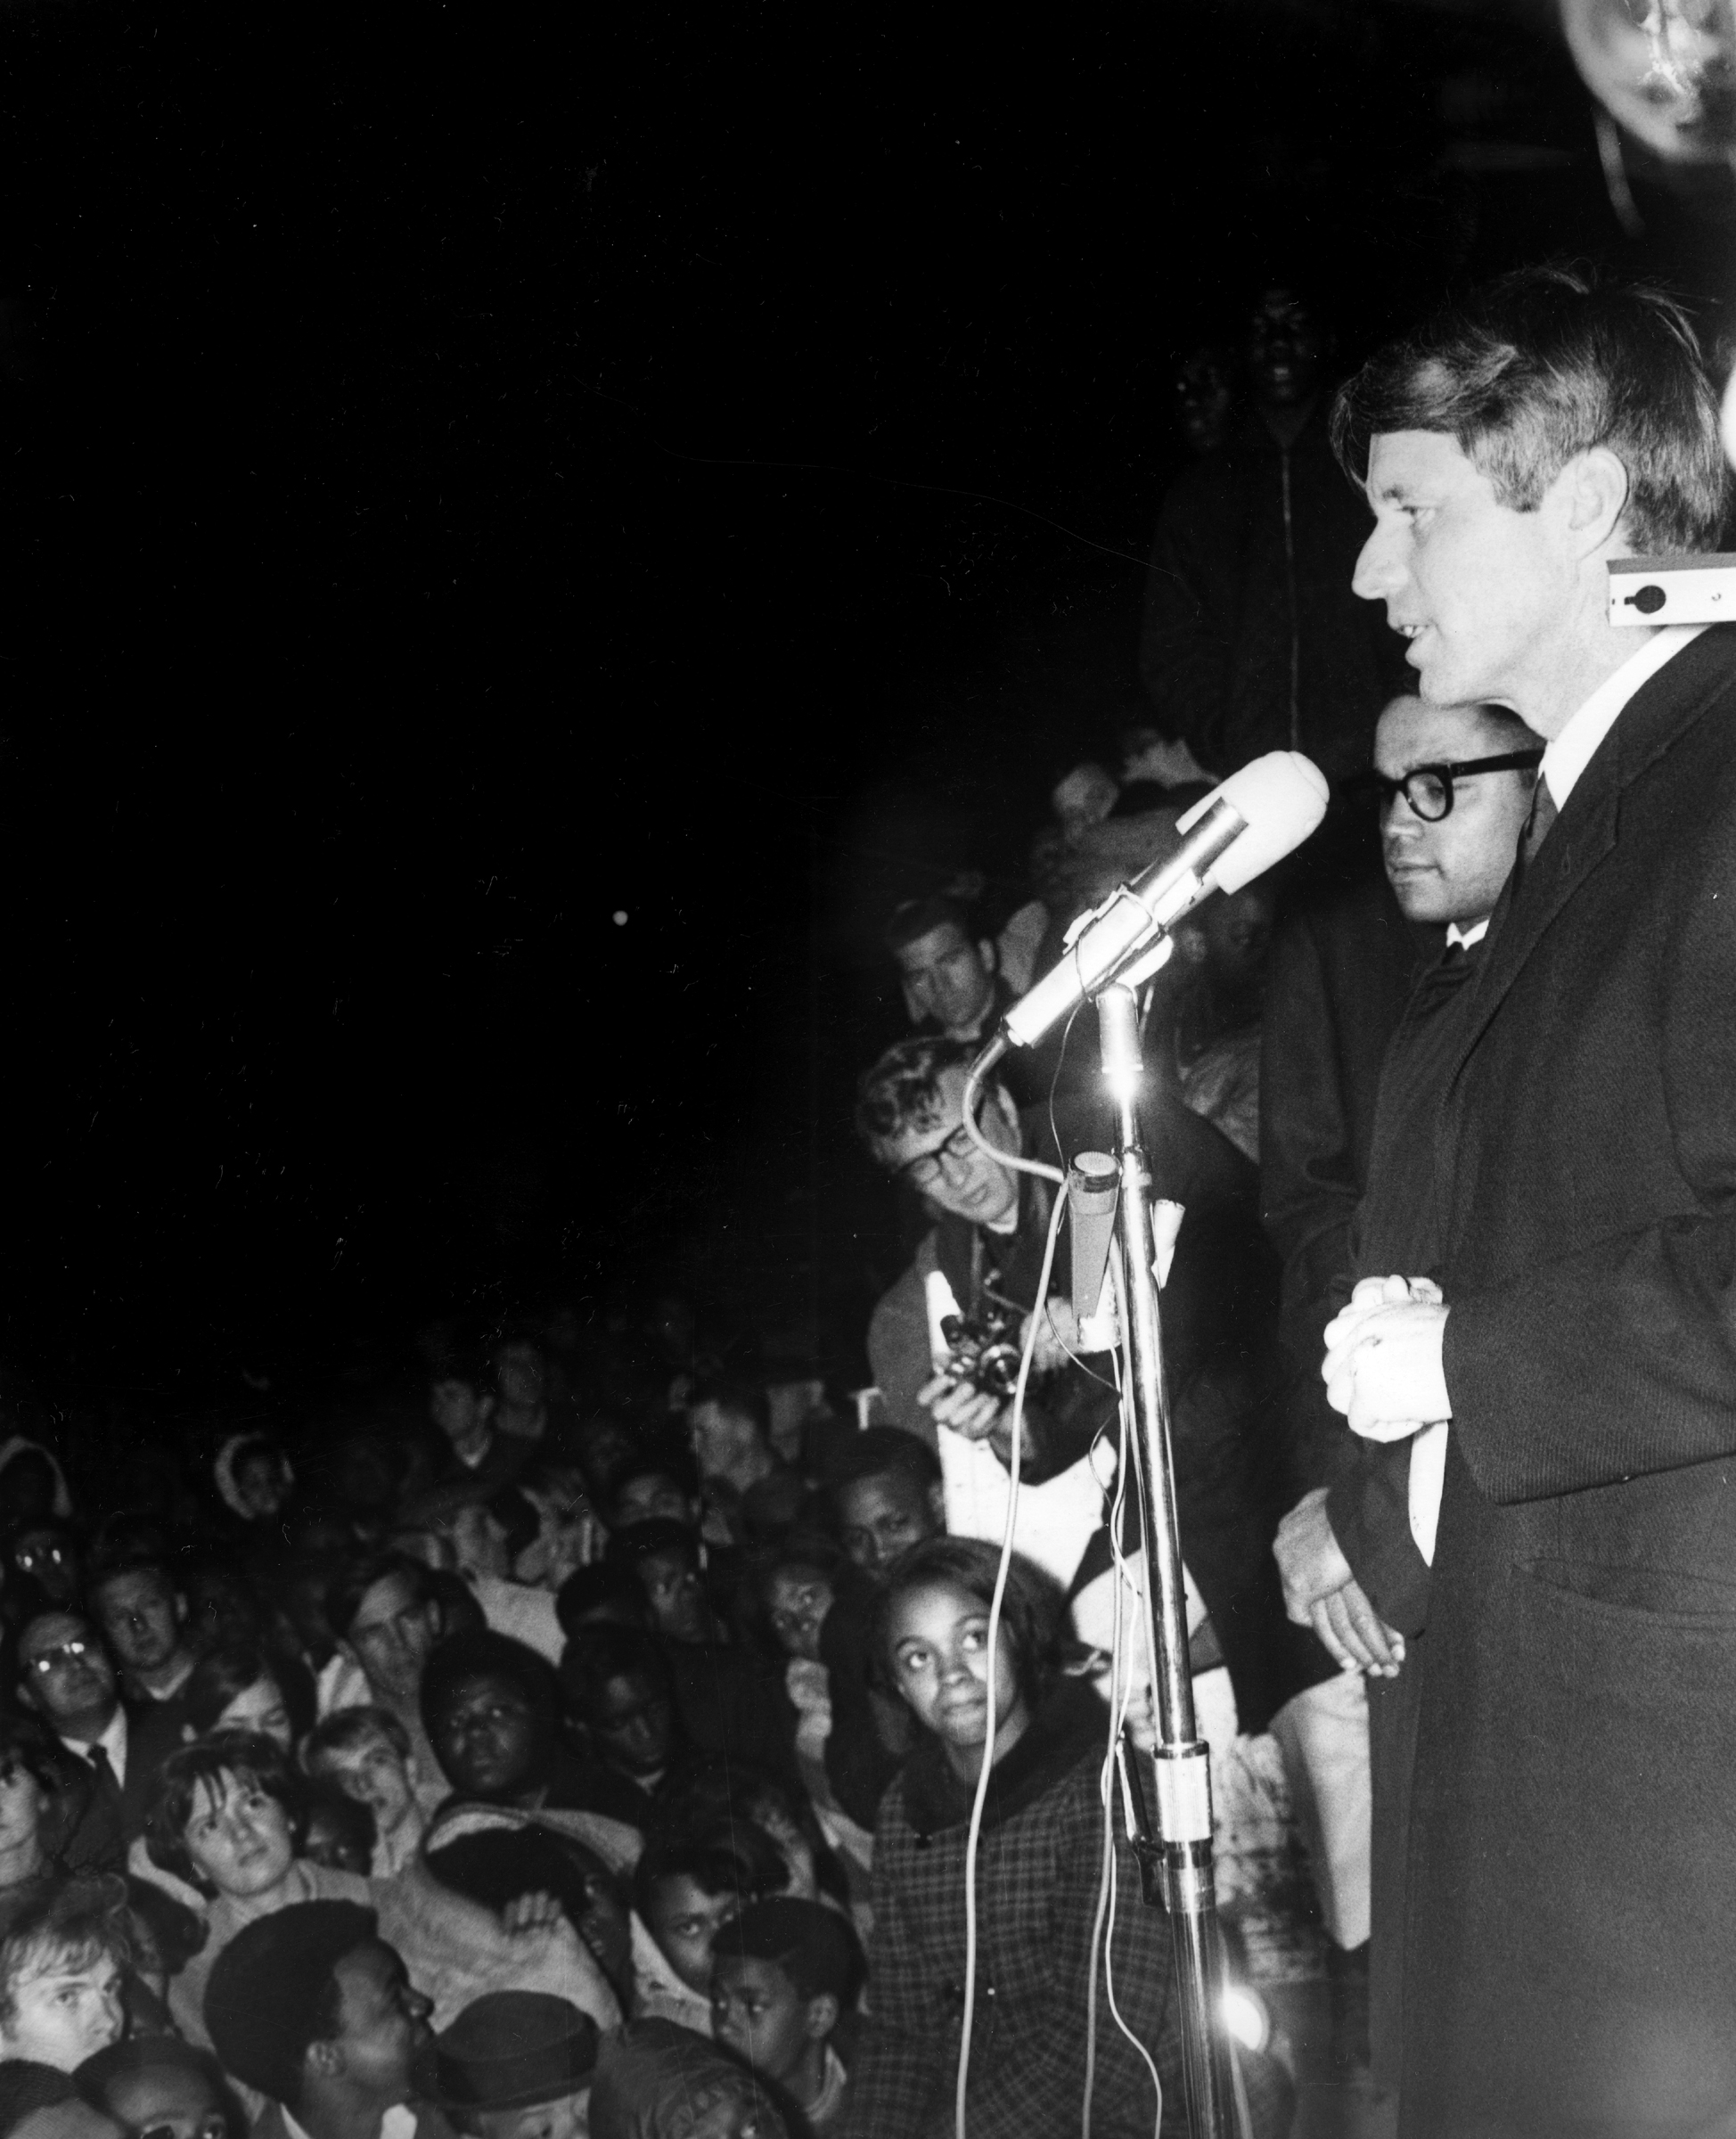 Robert F. Kennedy Speech, April 4, 1968.